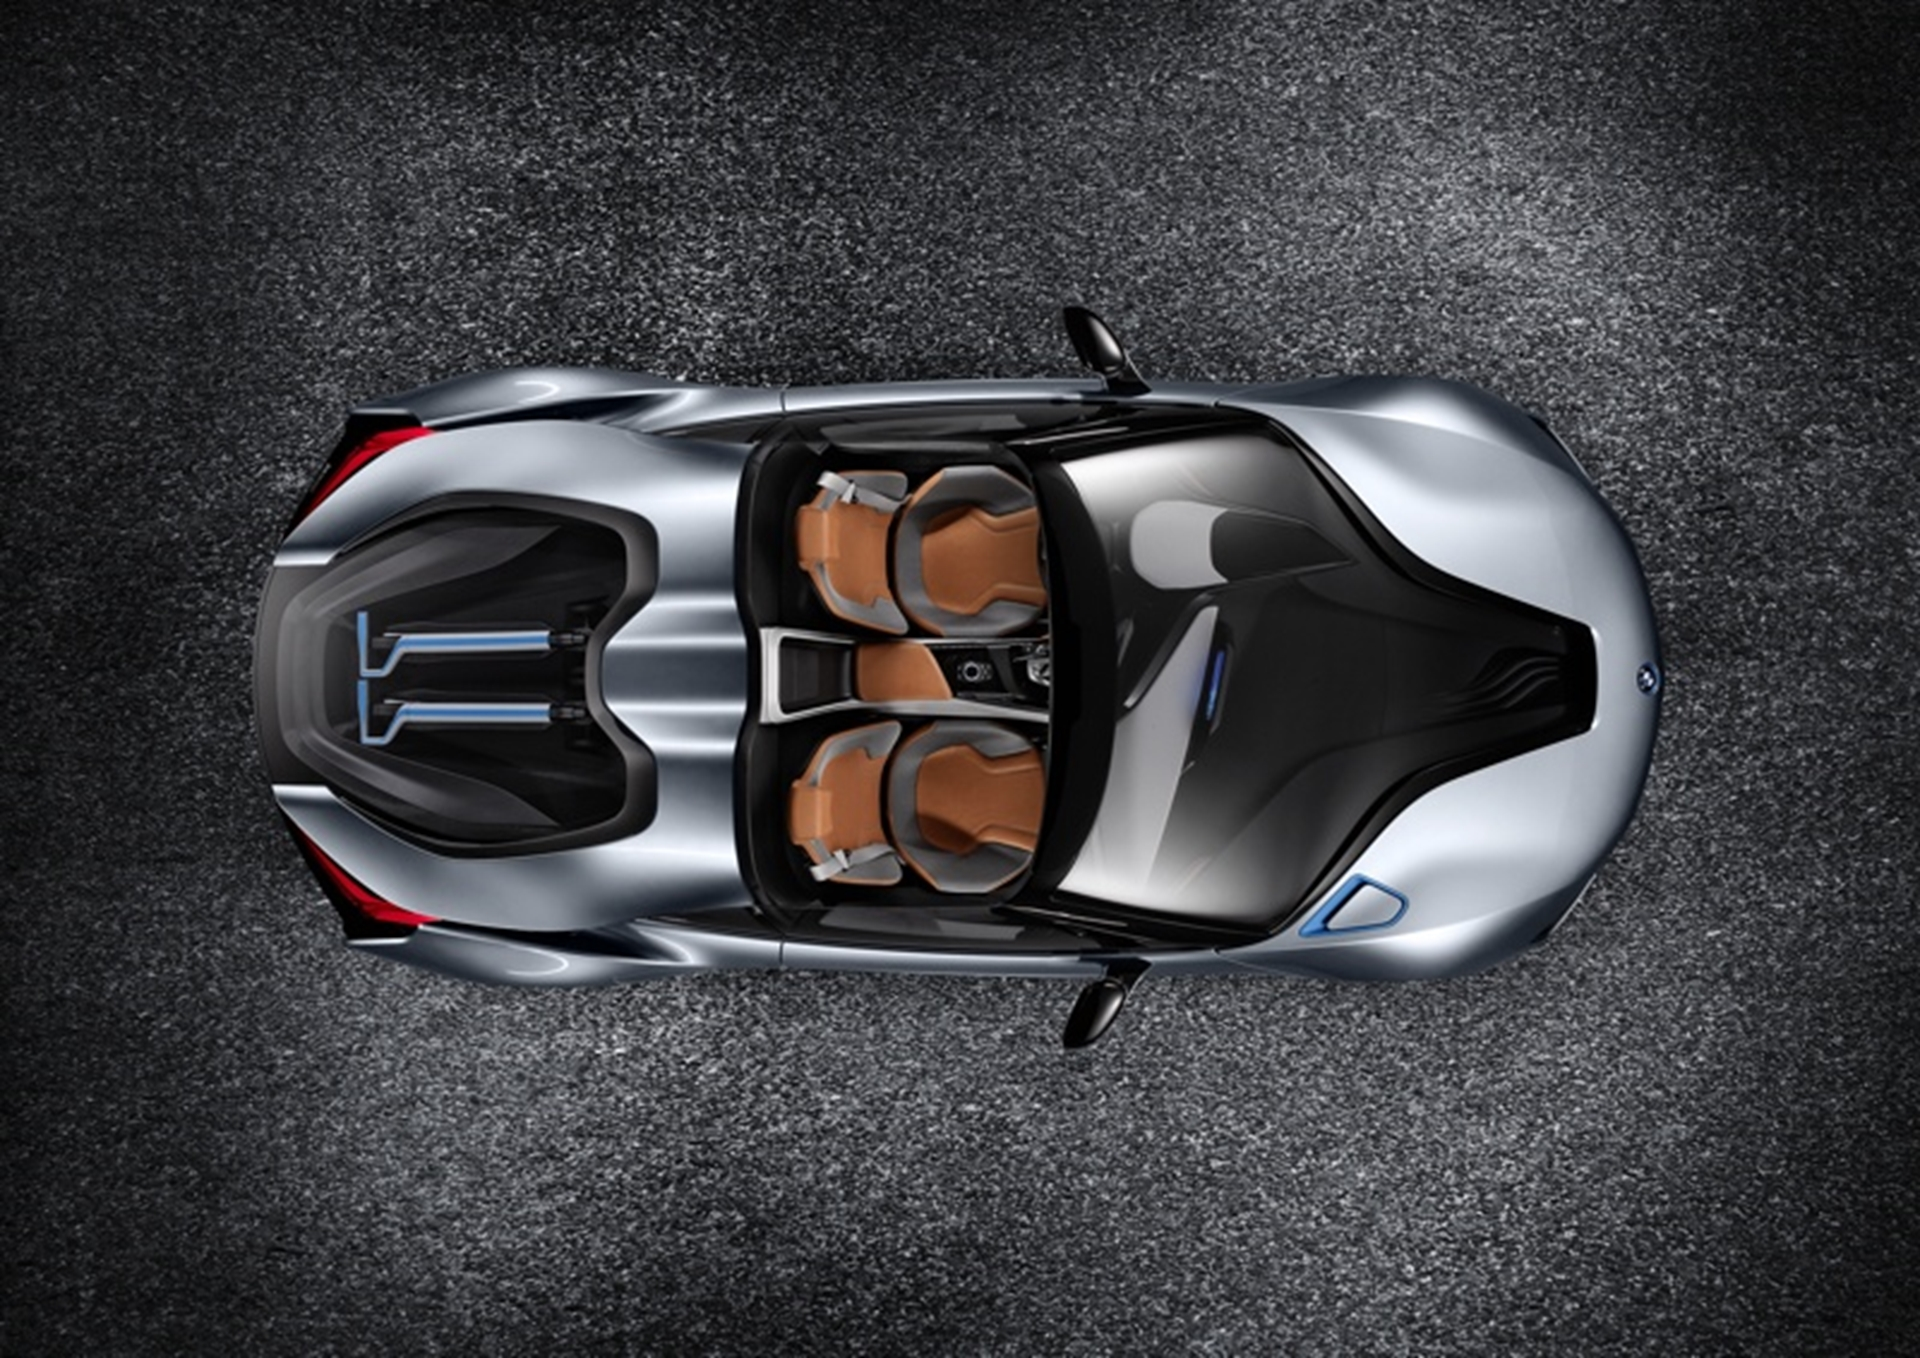 Bmw I8 Concept Spyder With Edrive Is An Open Top Two Seater